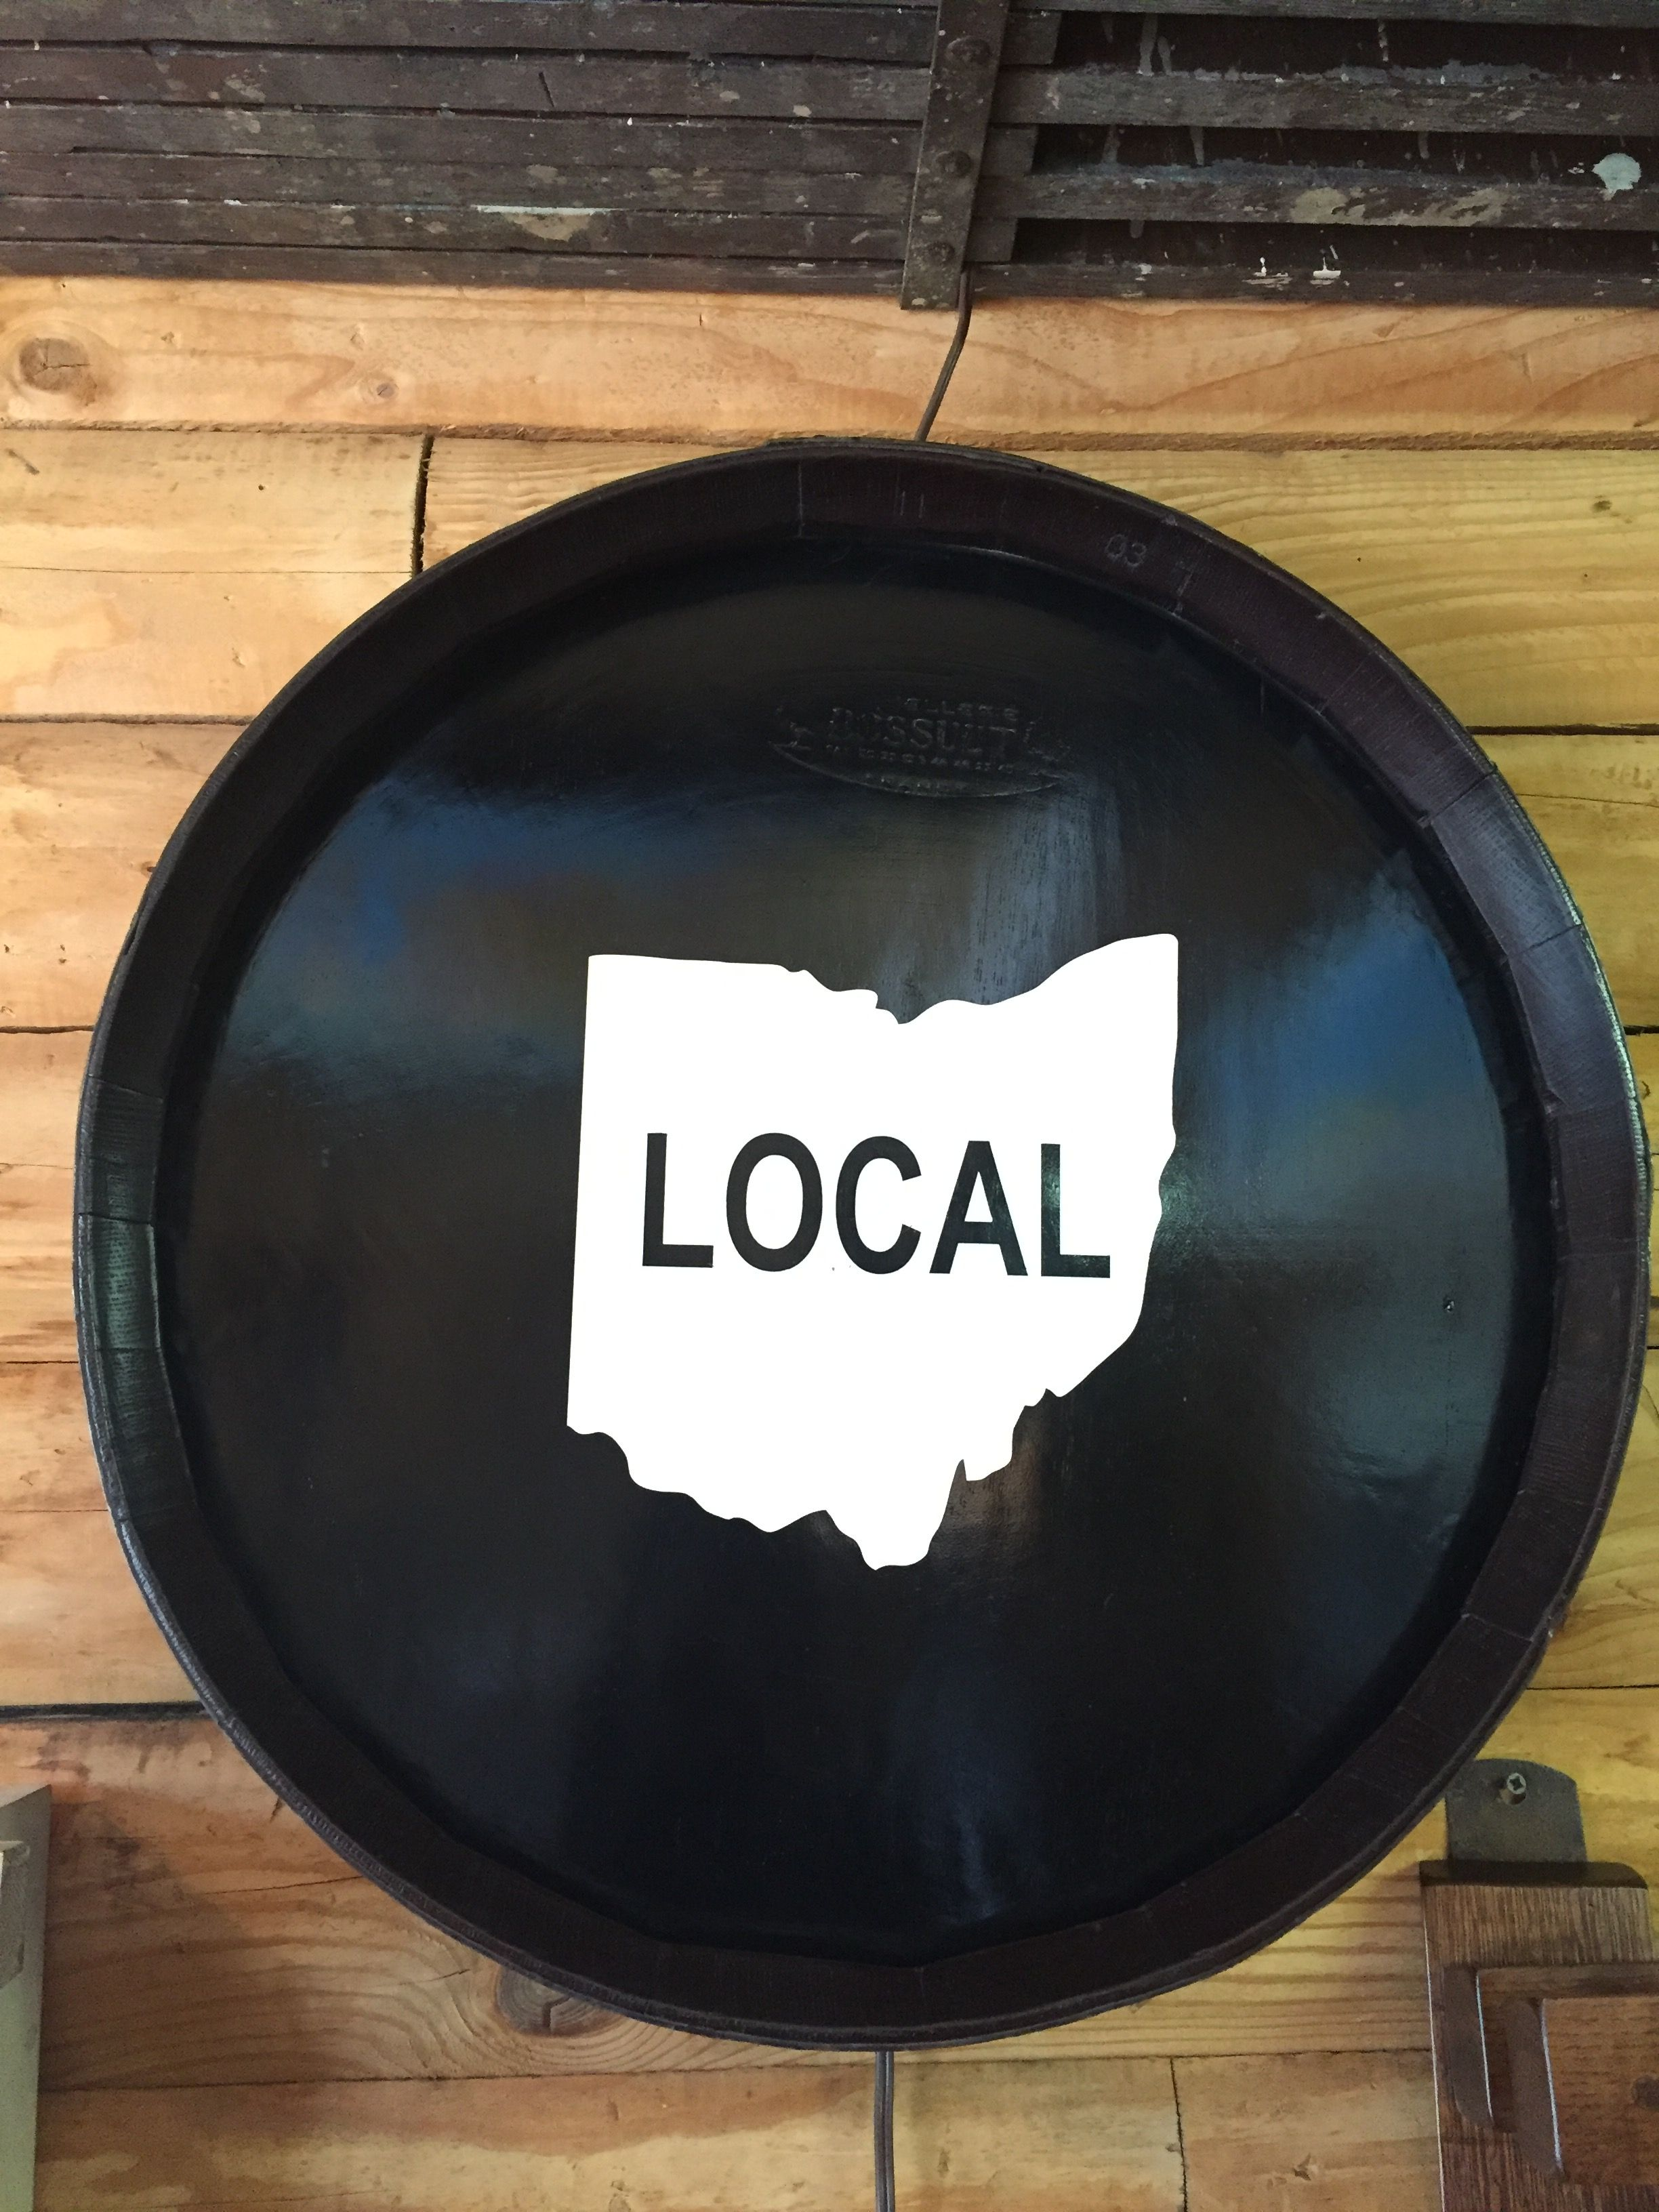 Locally Made In Ohio Amish Country Our Barrel Furniture Is Sure To